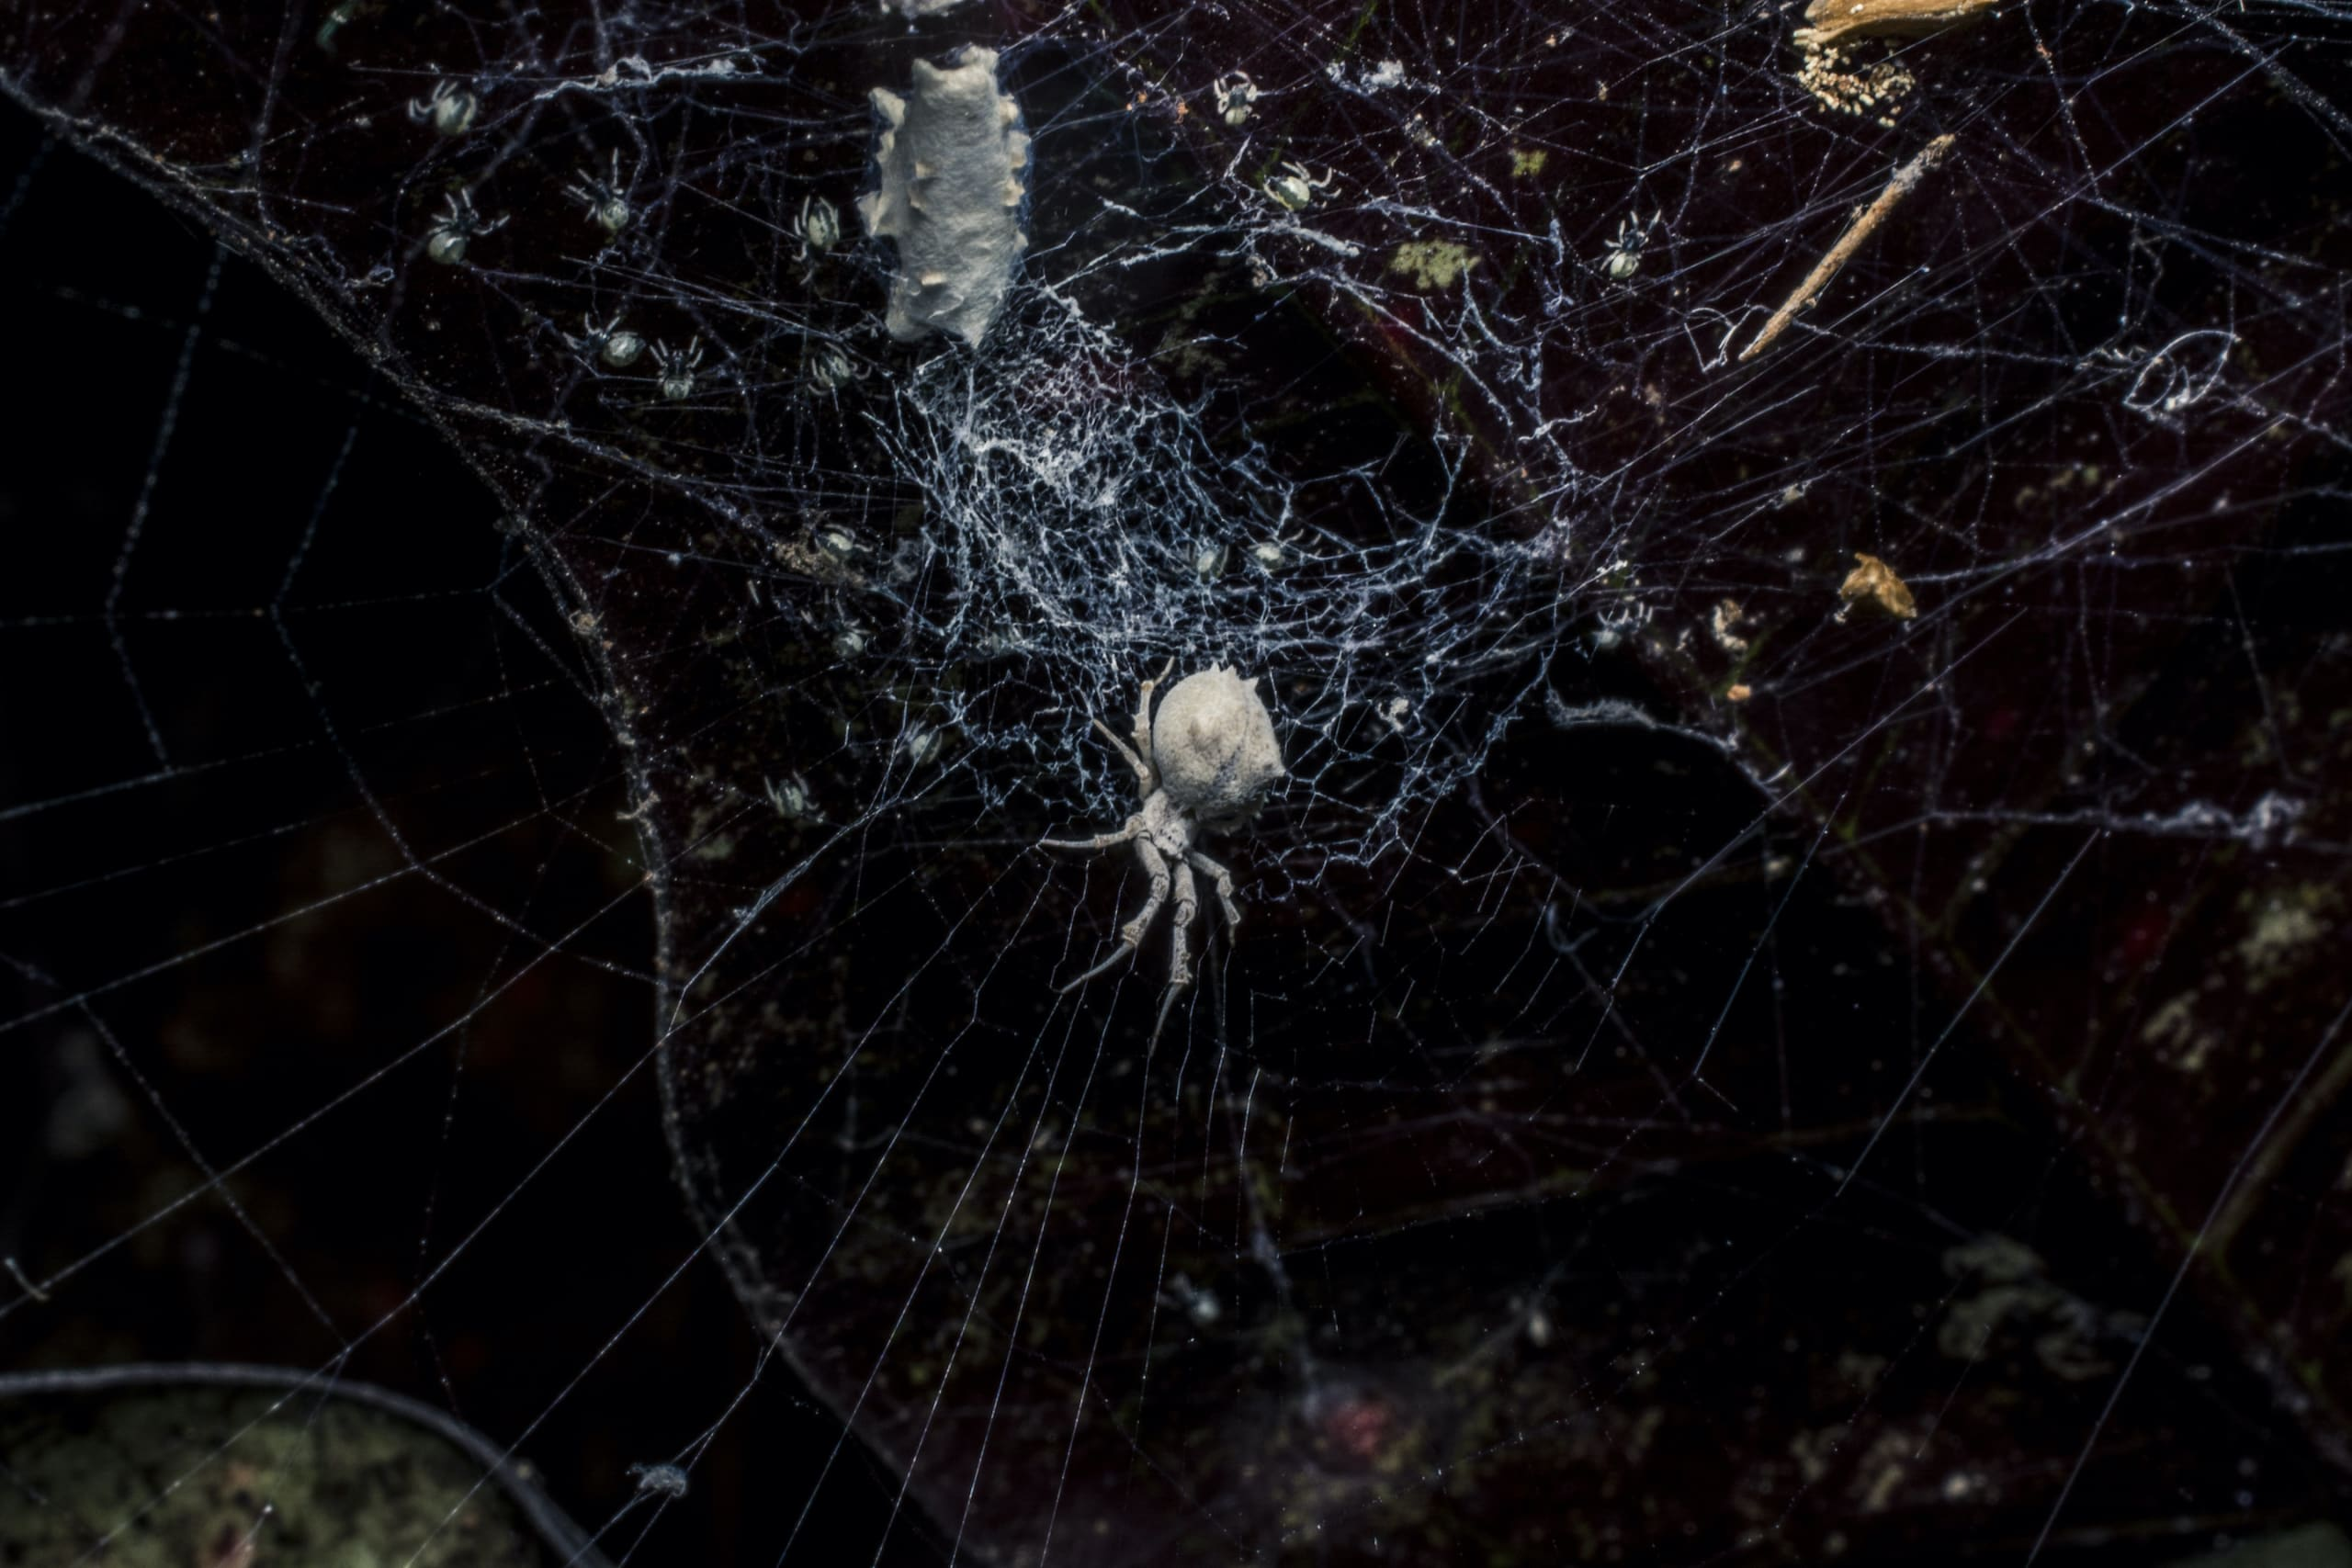 A Uloborid sits still on her cribellate web as a new batch of hatchlings explore their mother's orb web. Photo: Samuel John  Cover photo: An Argiope sits on an intricately designed stabilimentum on its web. Stabilimentum are decorative silk structures built by some spiders like the Argiope. Photo: Samuel John